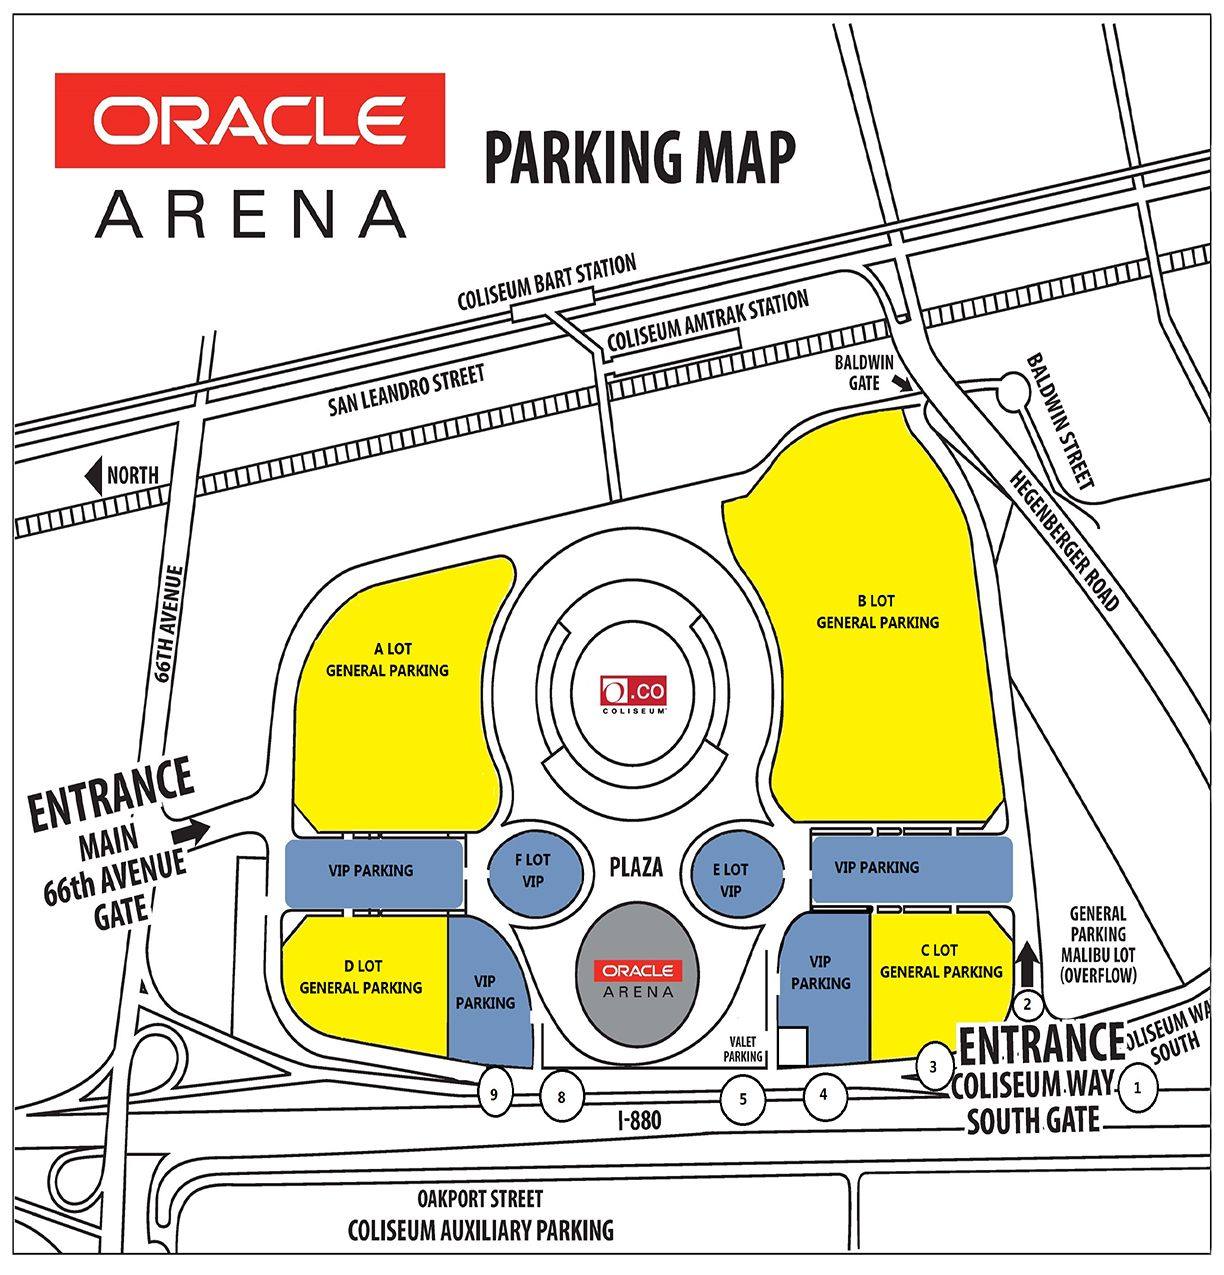 Oracle Arena Parking Map Warriors Game Seating Charts Game Arena Warriors Game